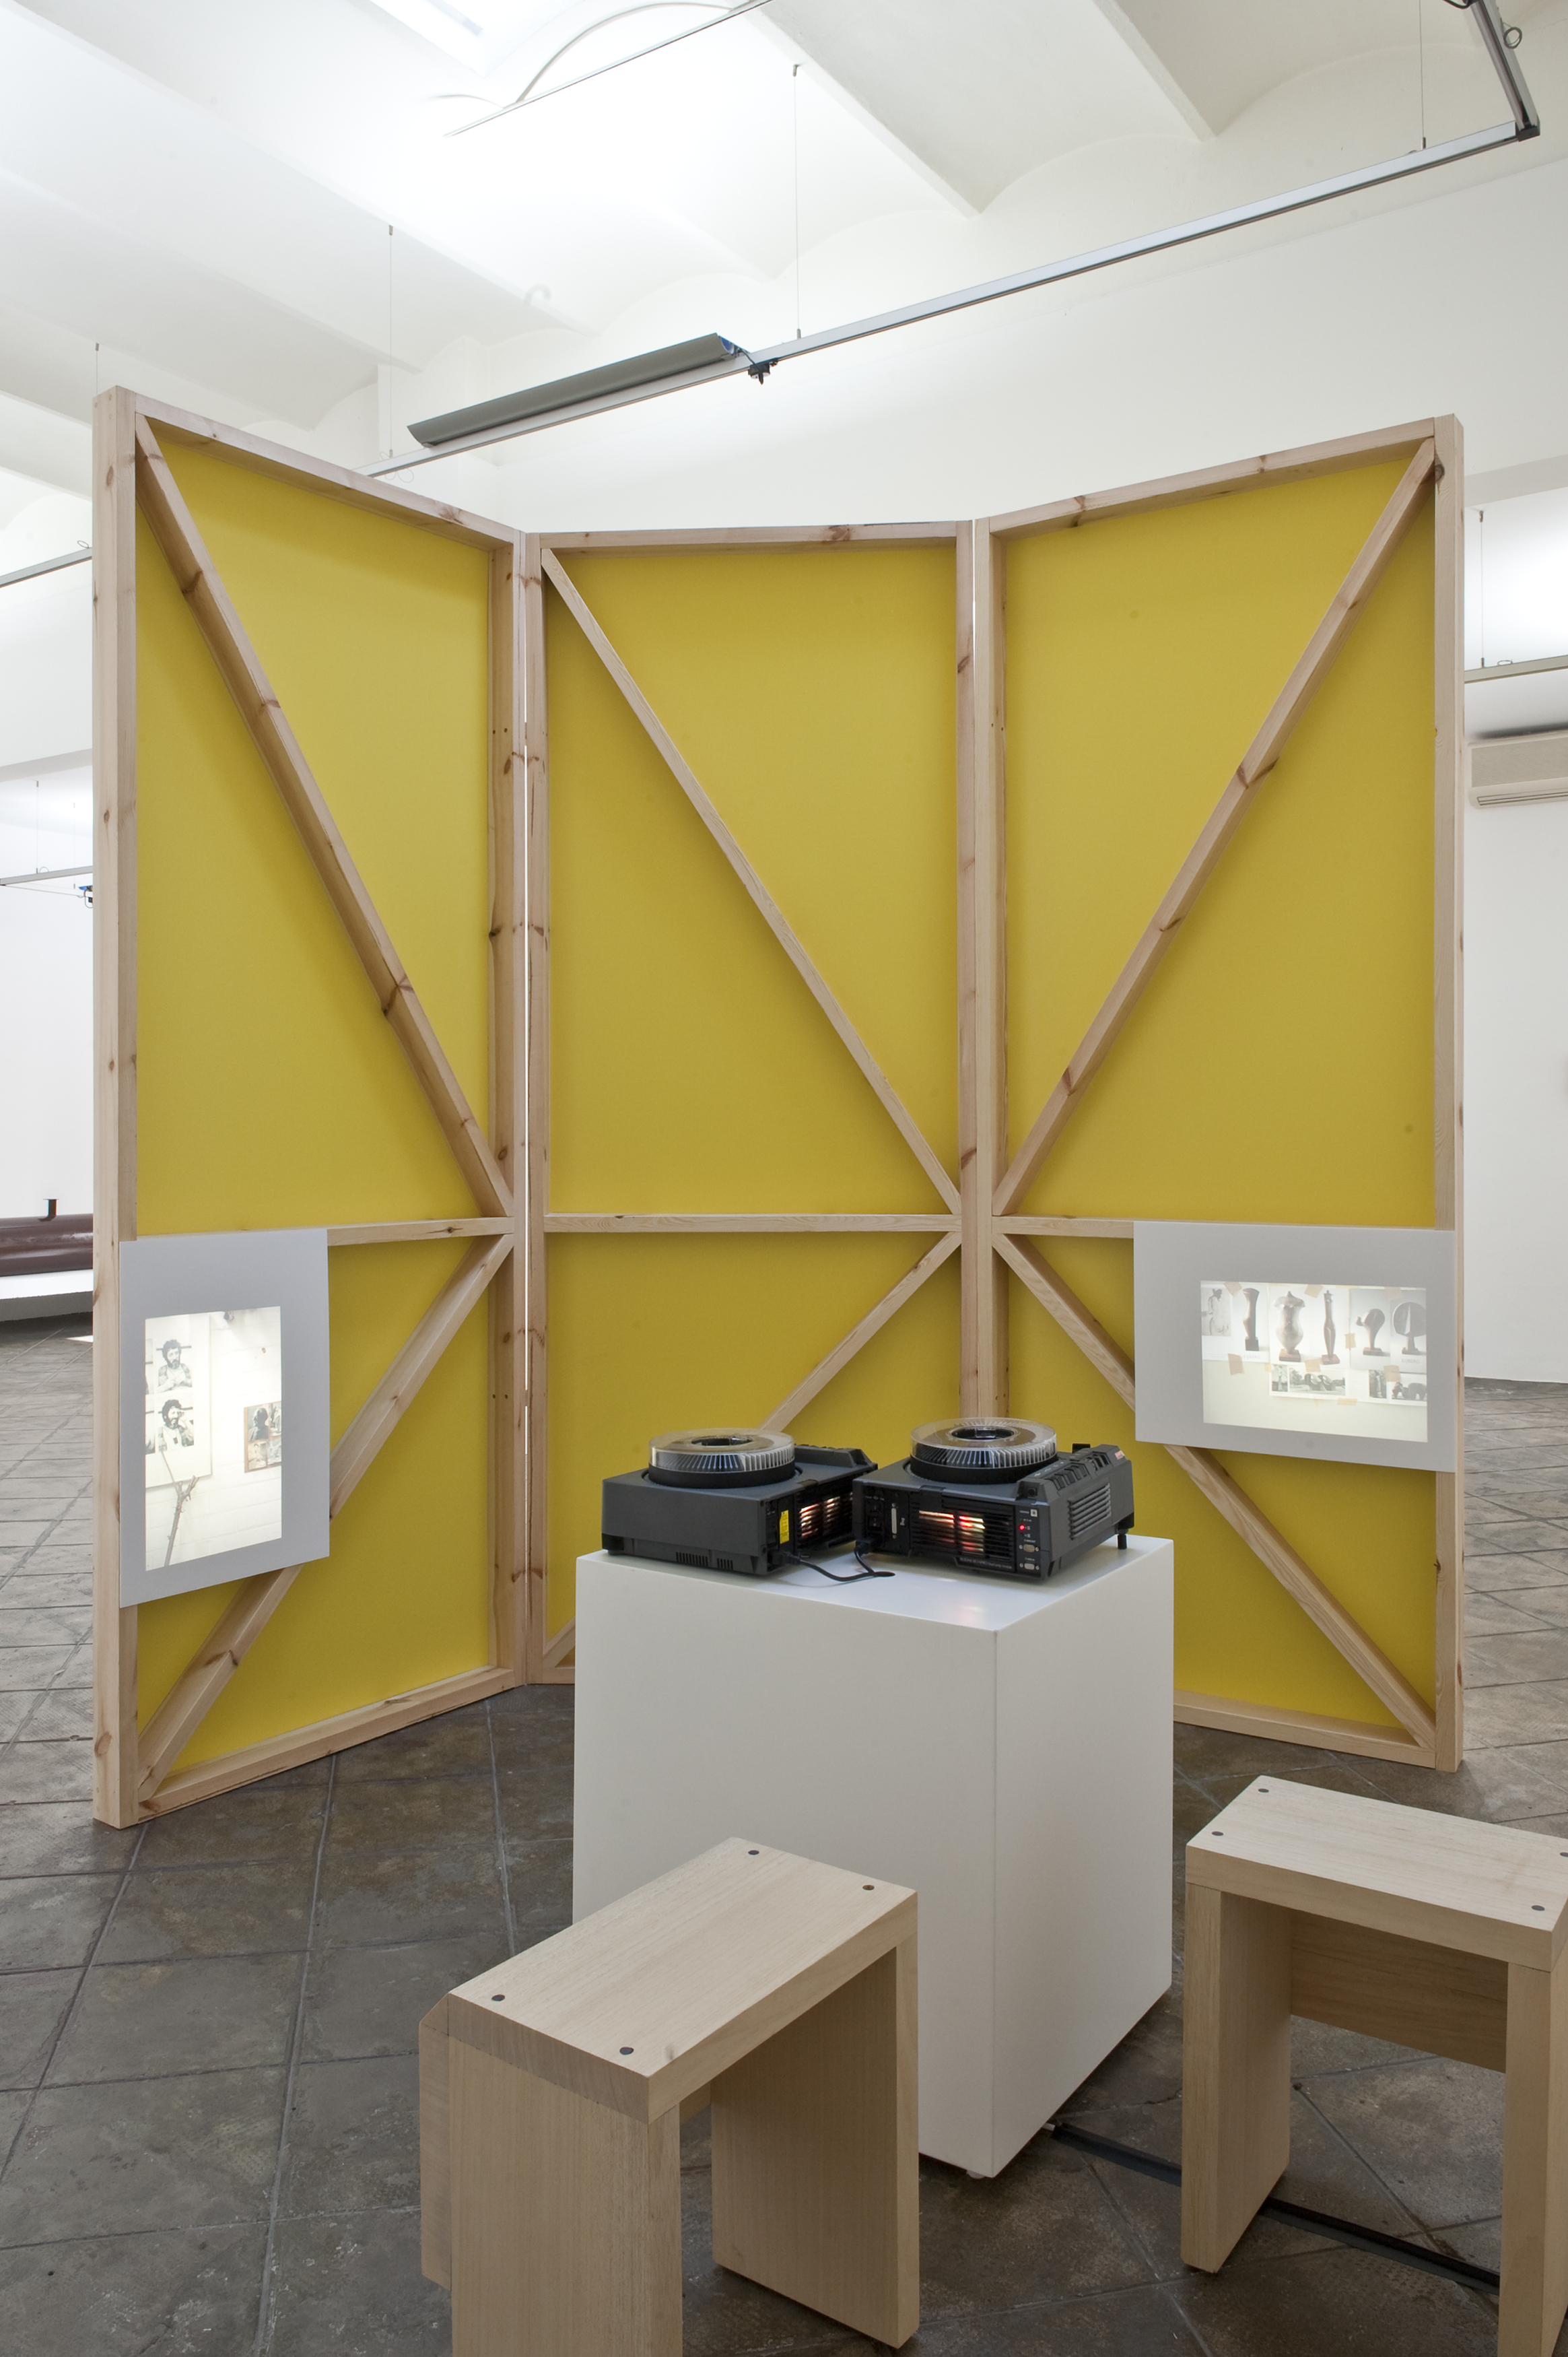 The Rules of Solid Matter Do Not Entirely Apply, 2014 |  | ProjecteSD